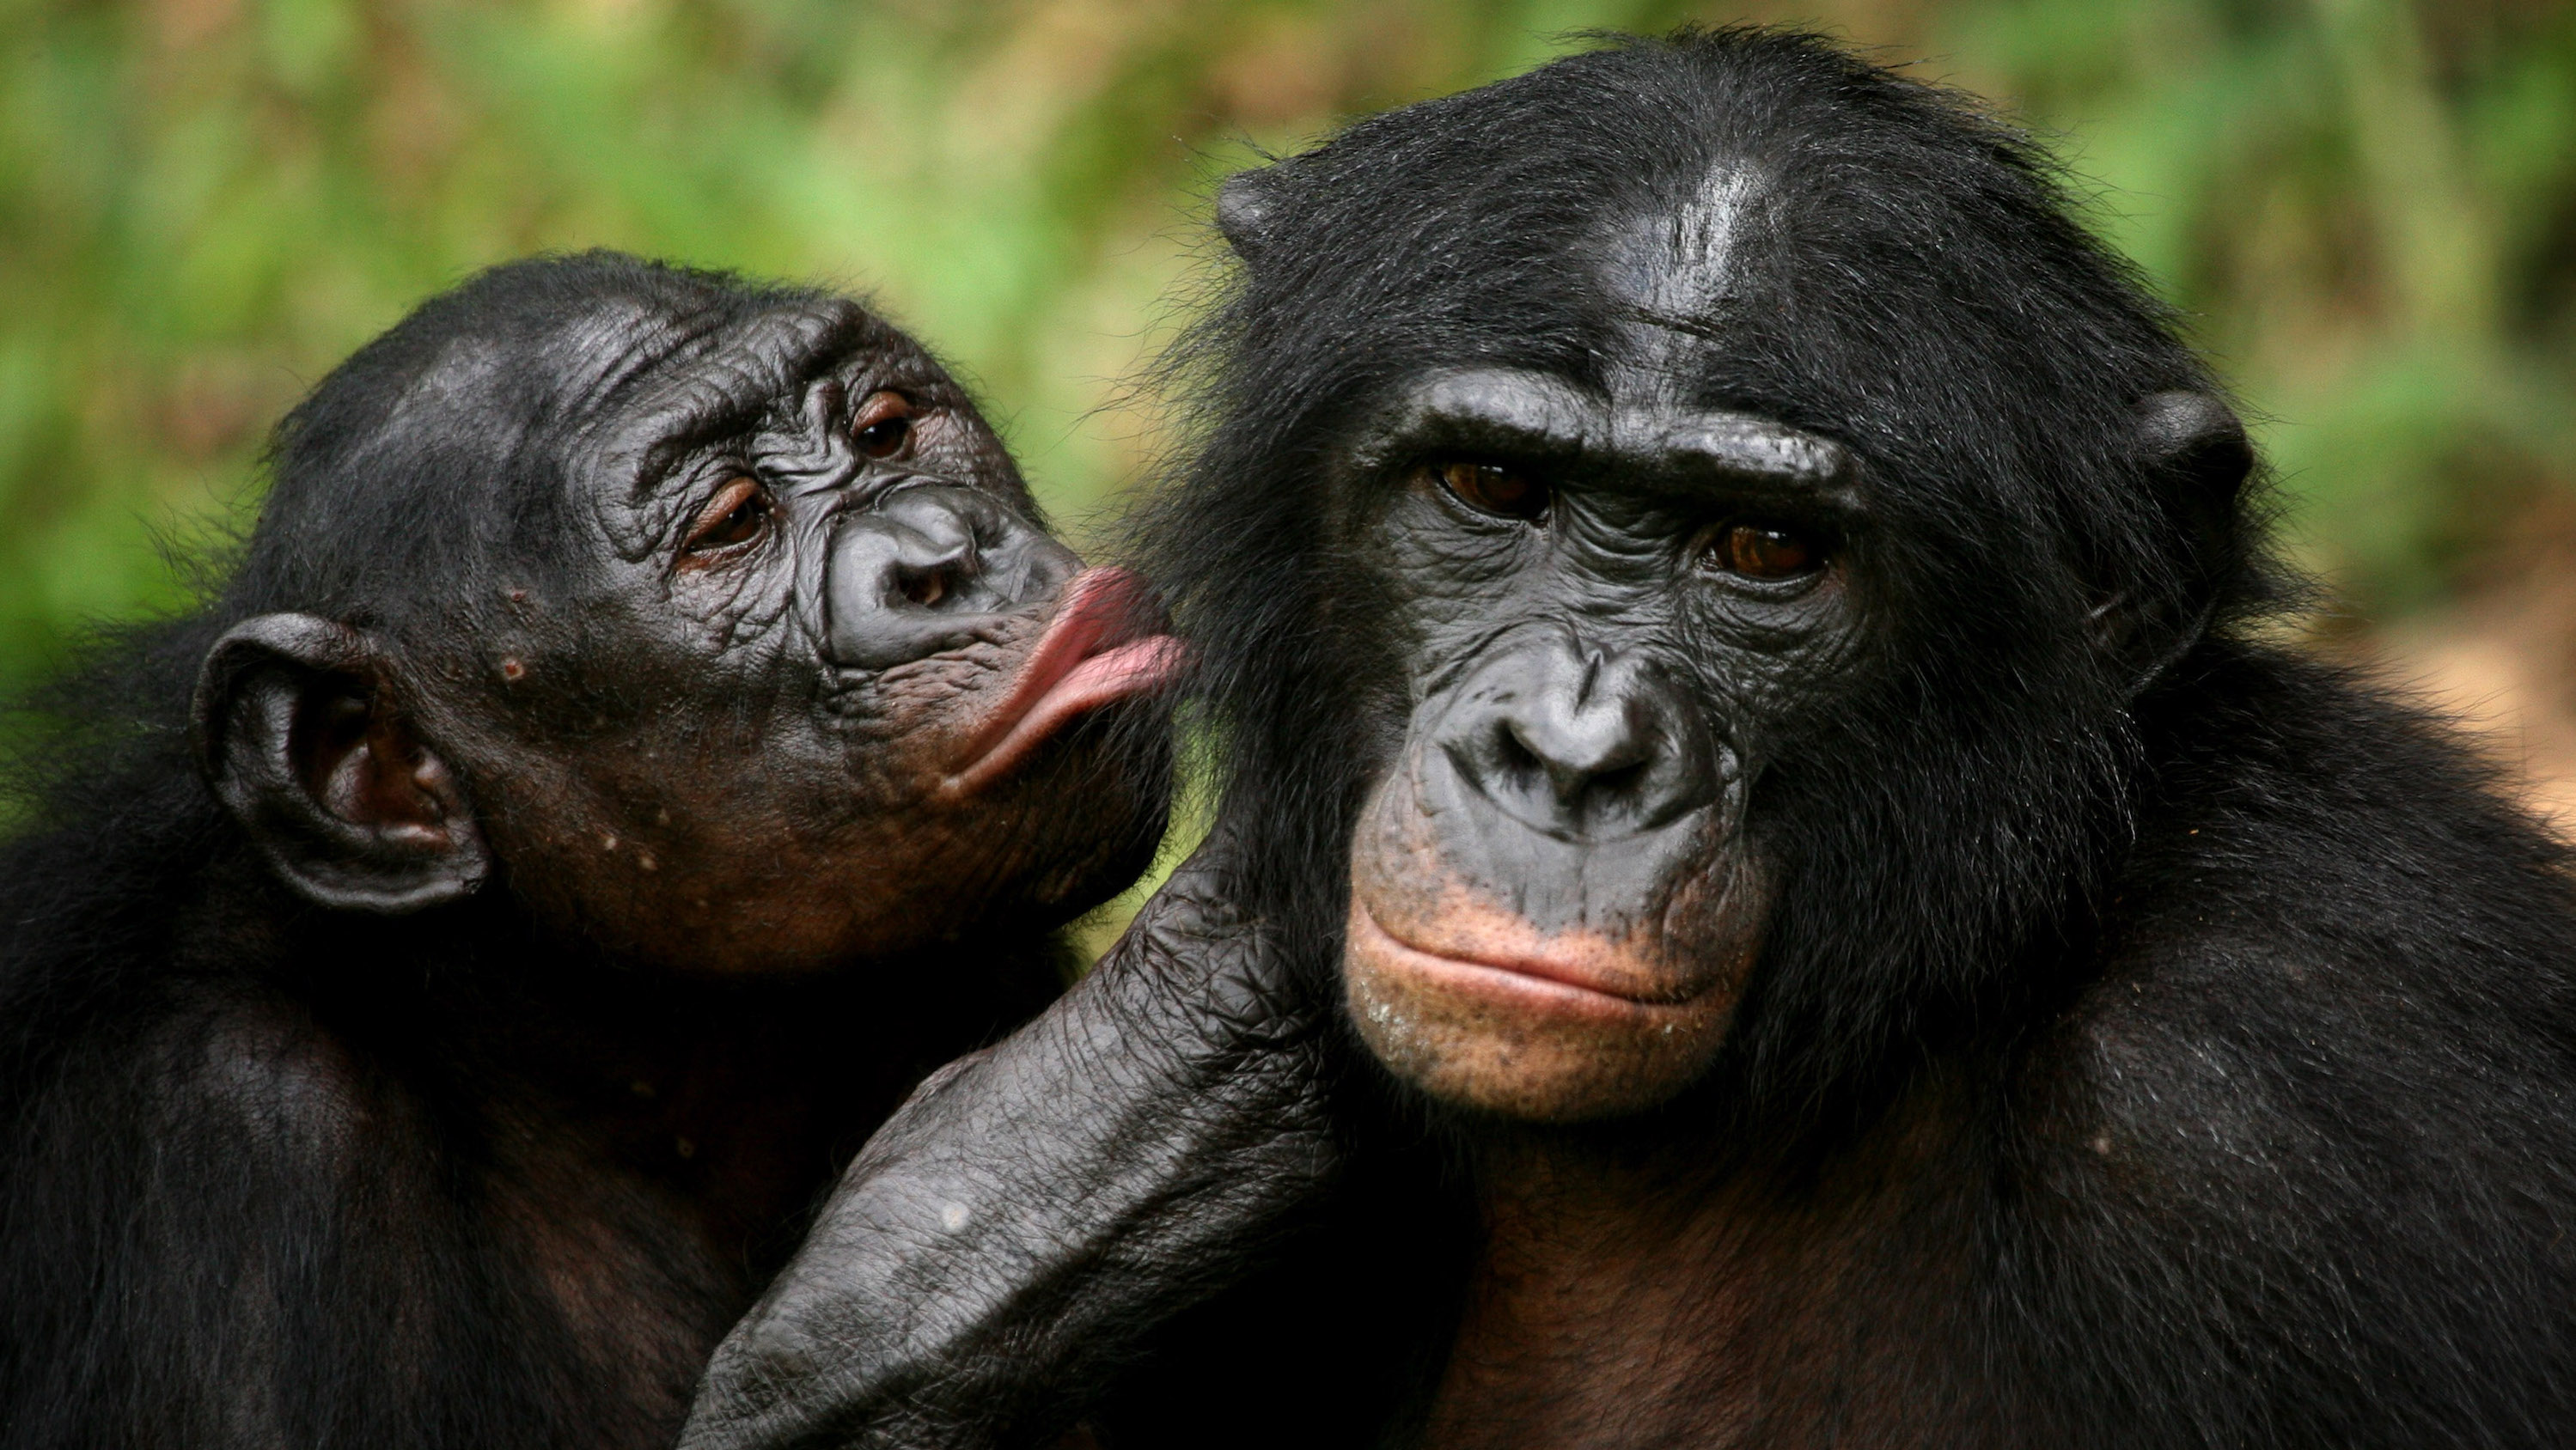 Bonobo apes, primates unique to Congo and humankind's closest relative, groom one another at a sanctuary just outside the capital Kinshasa, Congo on October 31, 2006.